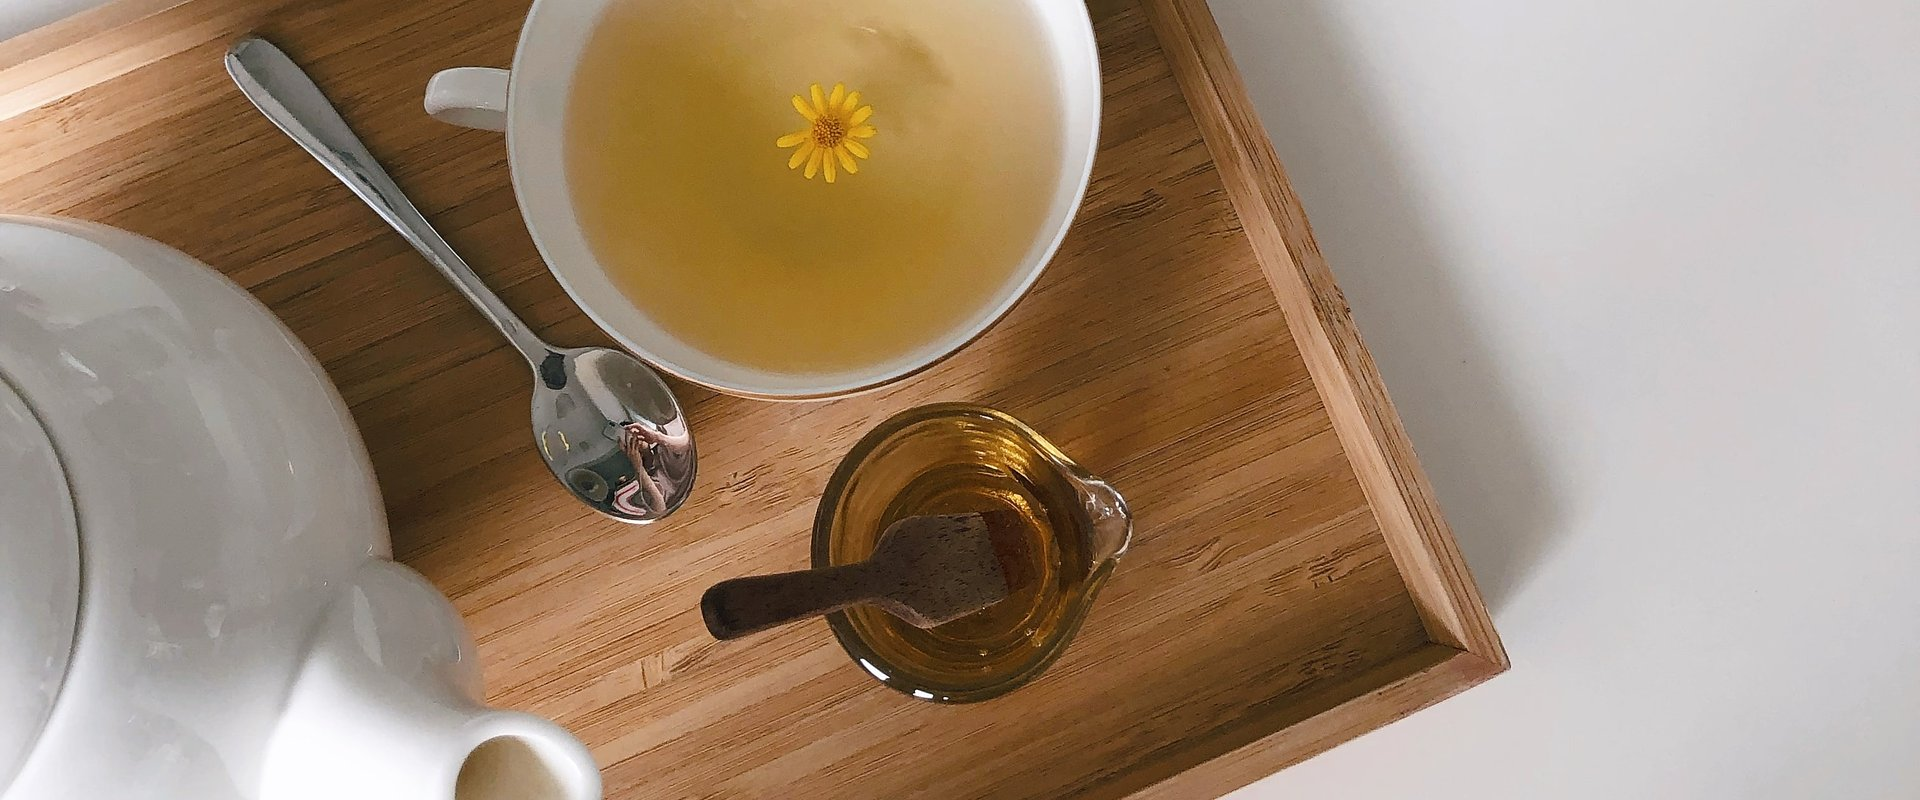 Best Teas for Tea Enthusiasts